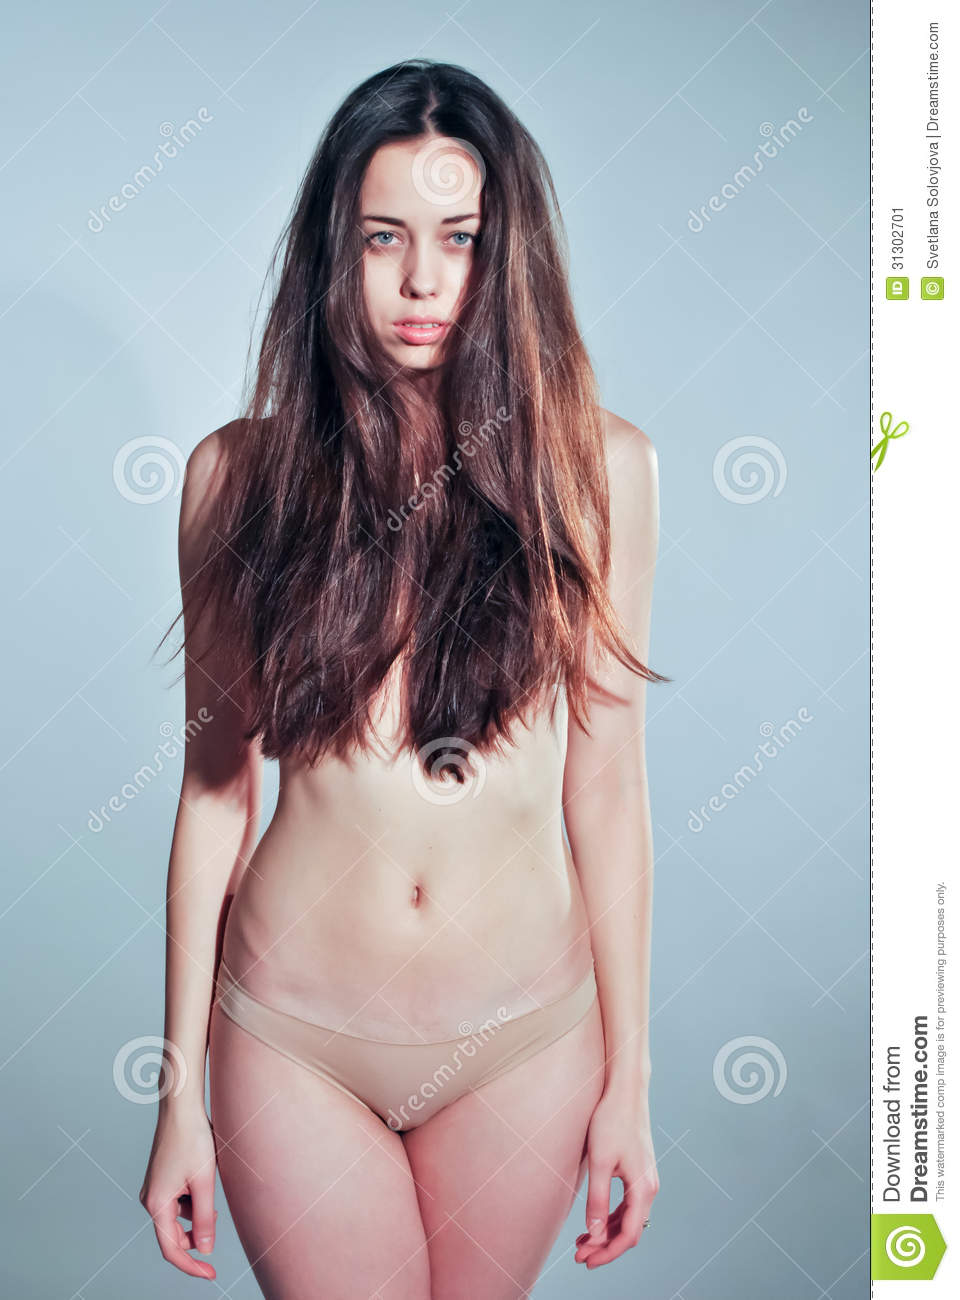 Russian fashion model nude